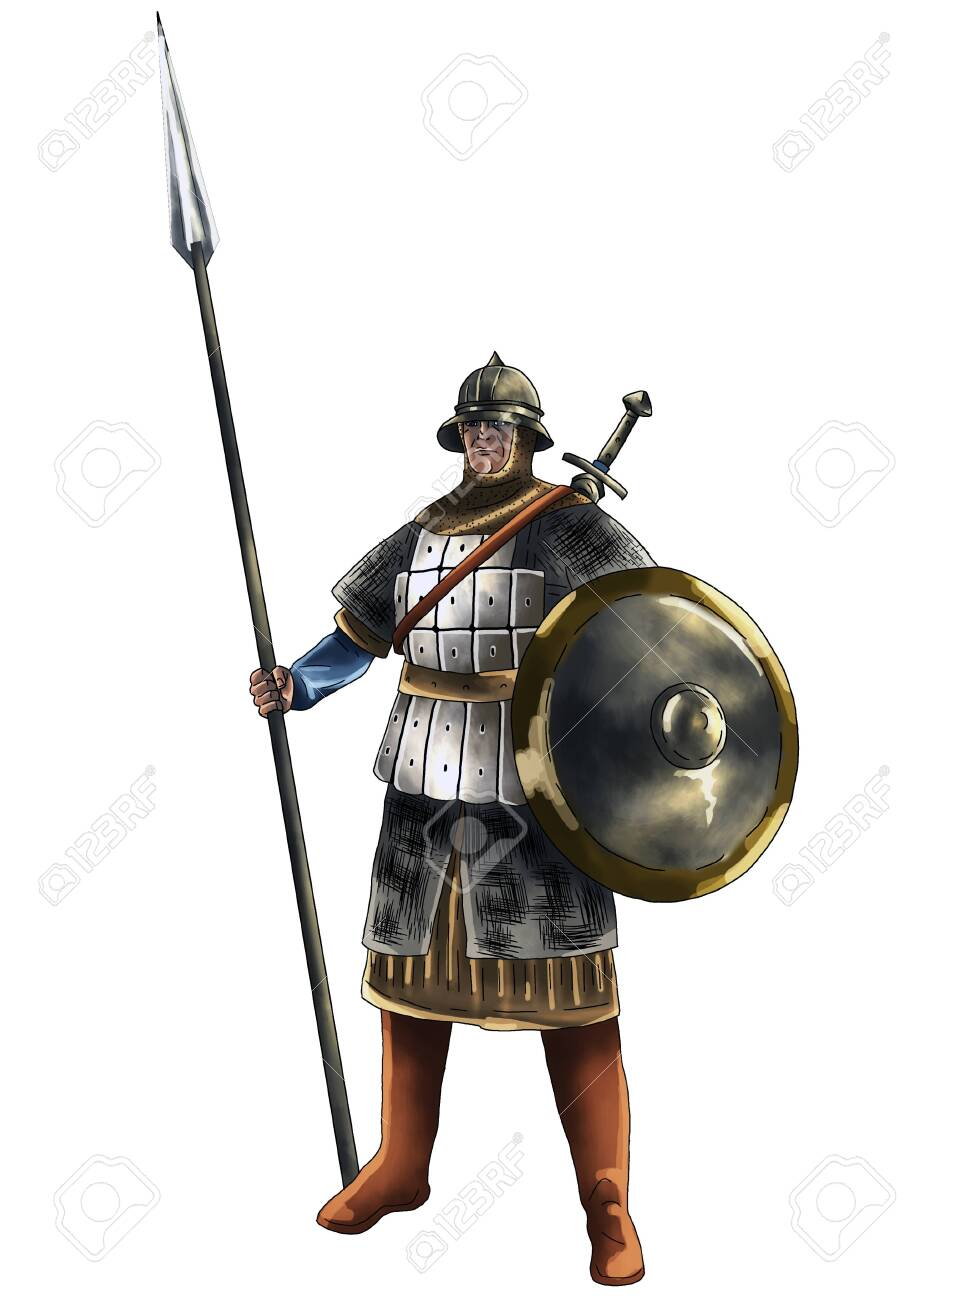 Warrior with spear and shield